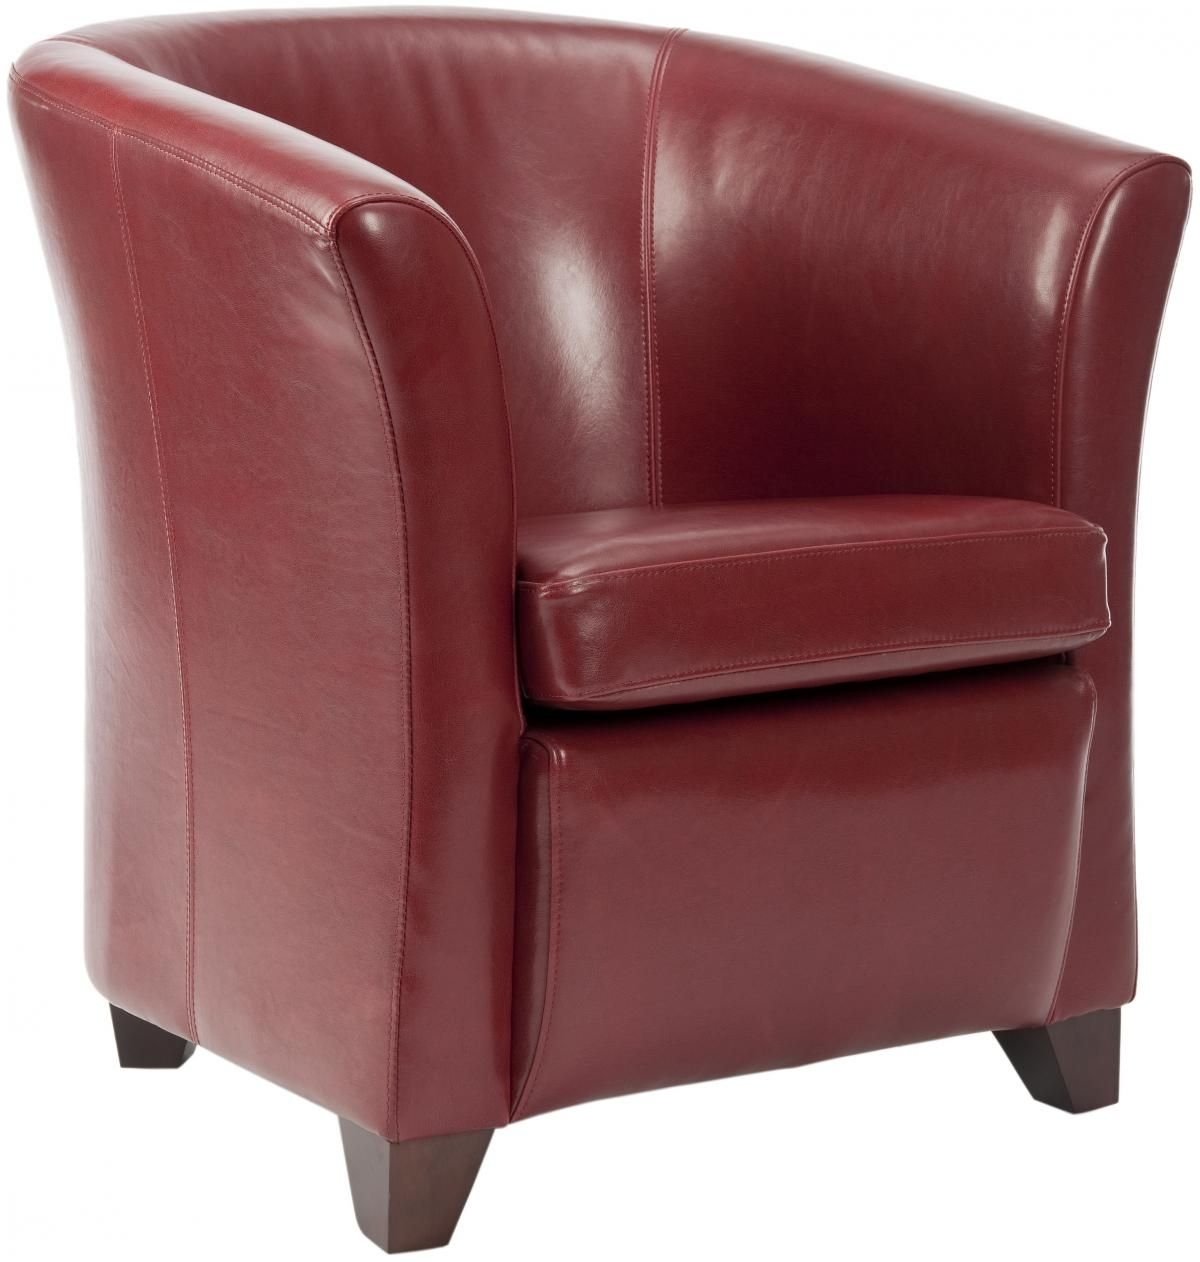 tub chair brown leather flash furniture office chairs ideas on foter